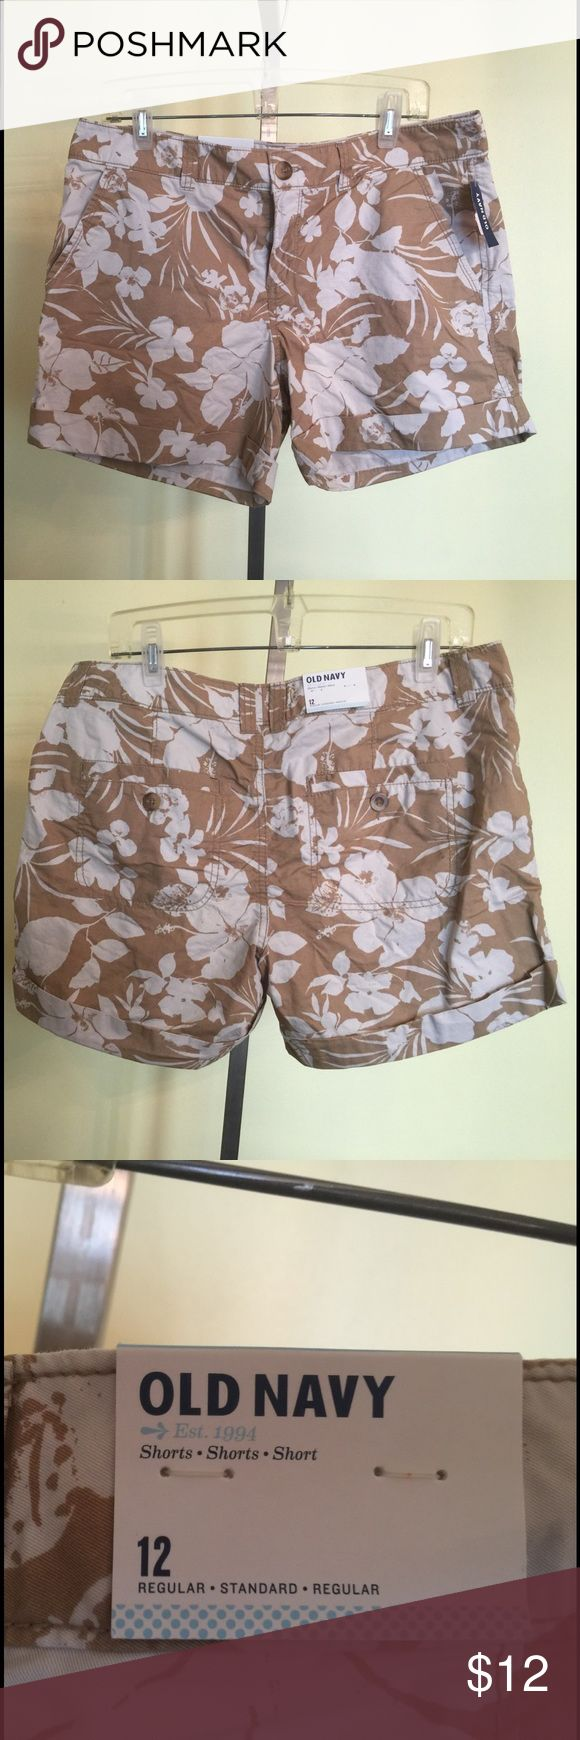 Women's Old Navy shorts size 12.  New. This is a pair of women's Old Navy brand shorts size 12. They are new with tags. If you have any questions please let me know. Thanks! Old Navy Shorts